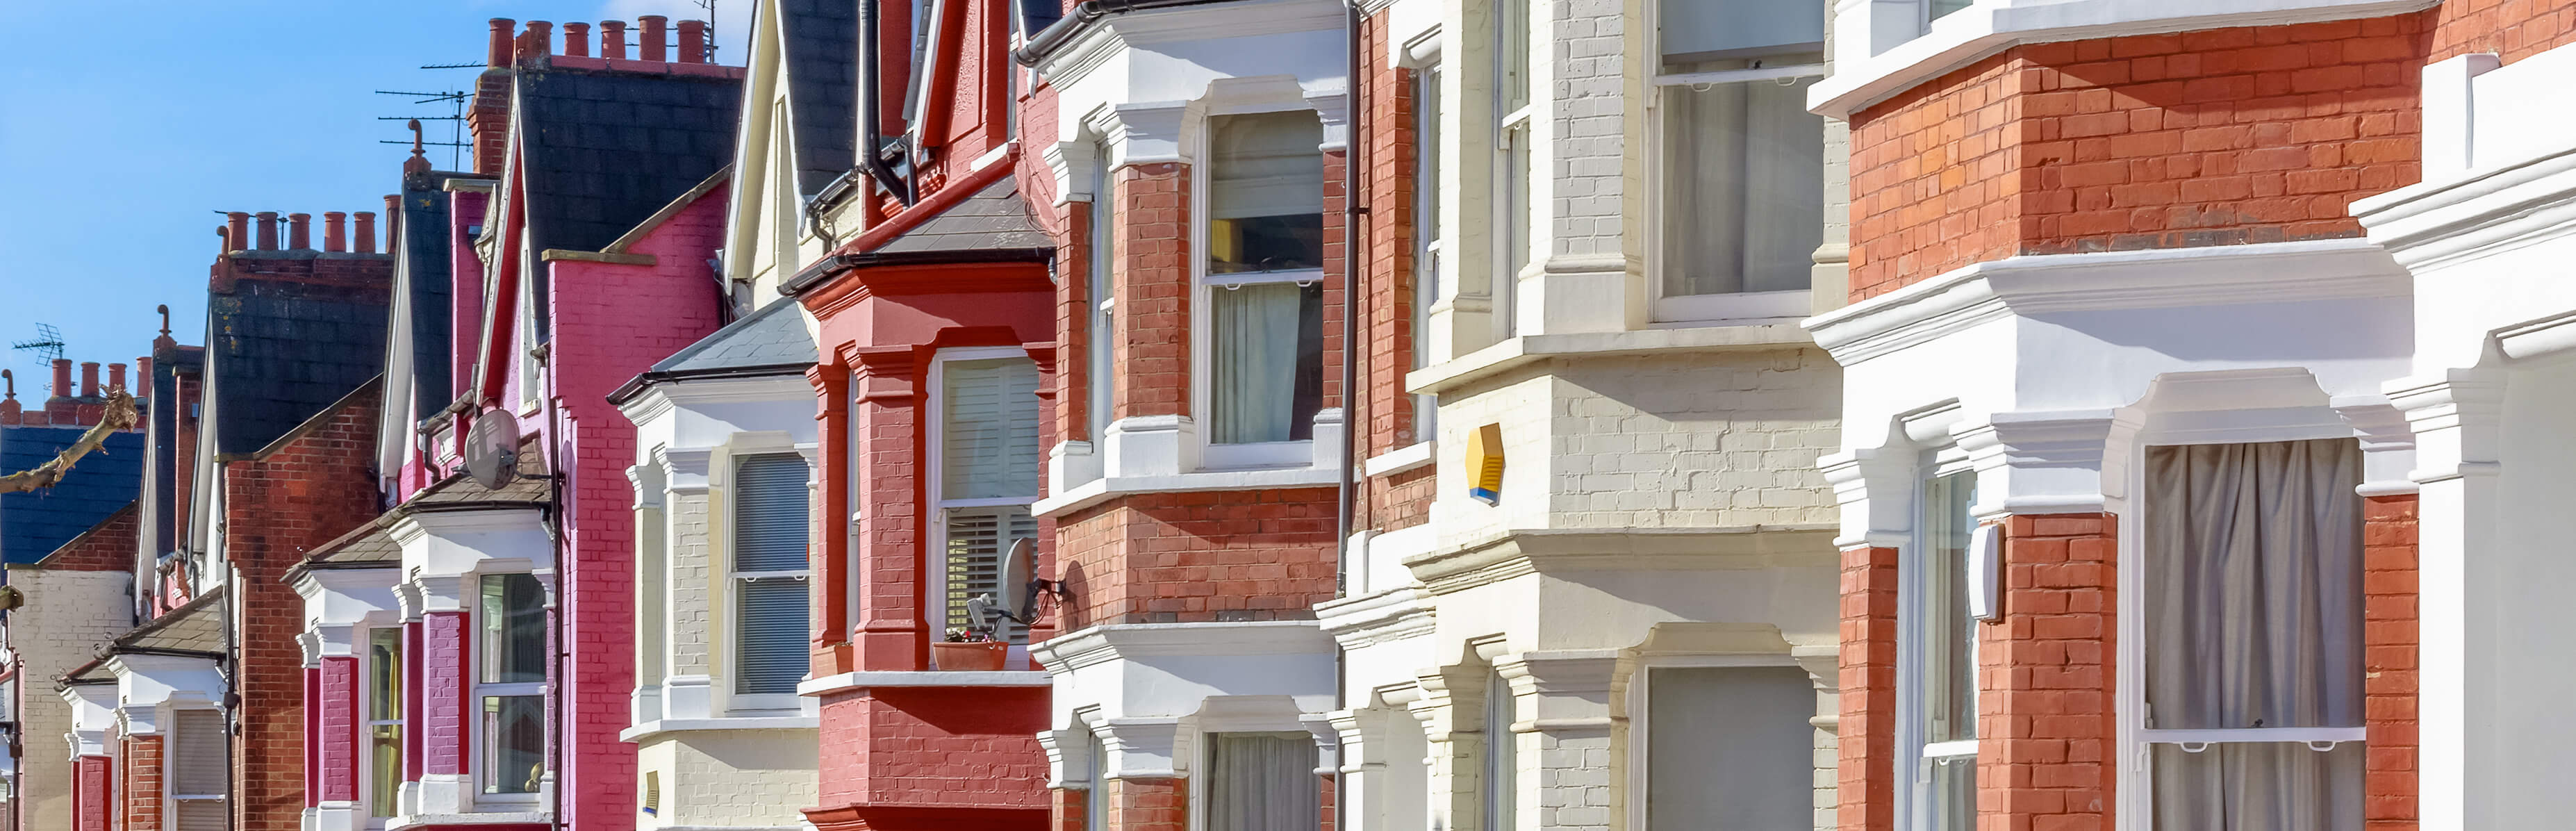 domestic residence planning advice image of brightly coloured houses side by side